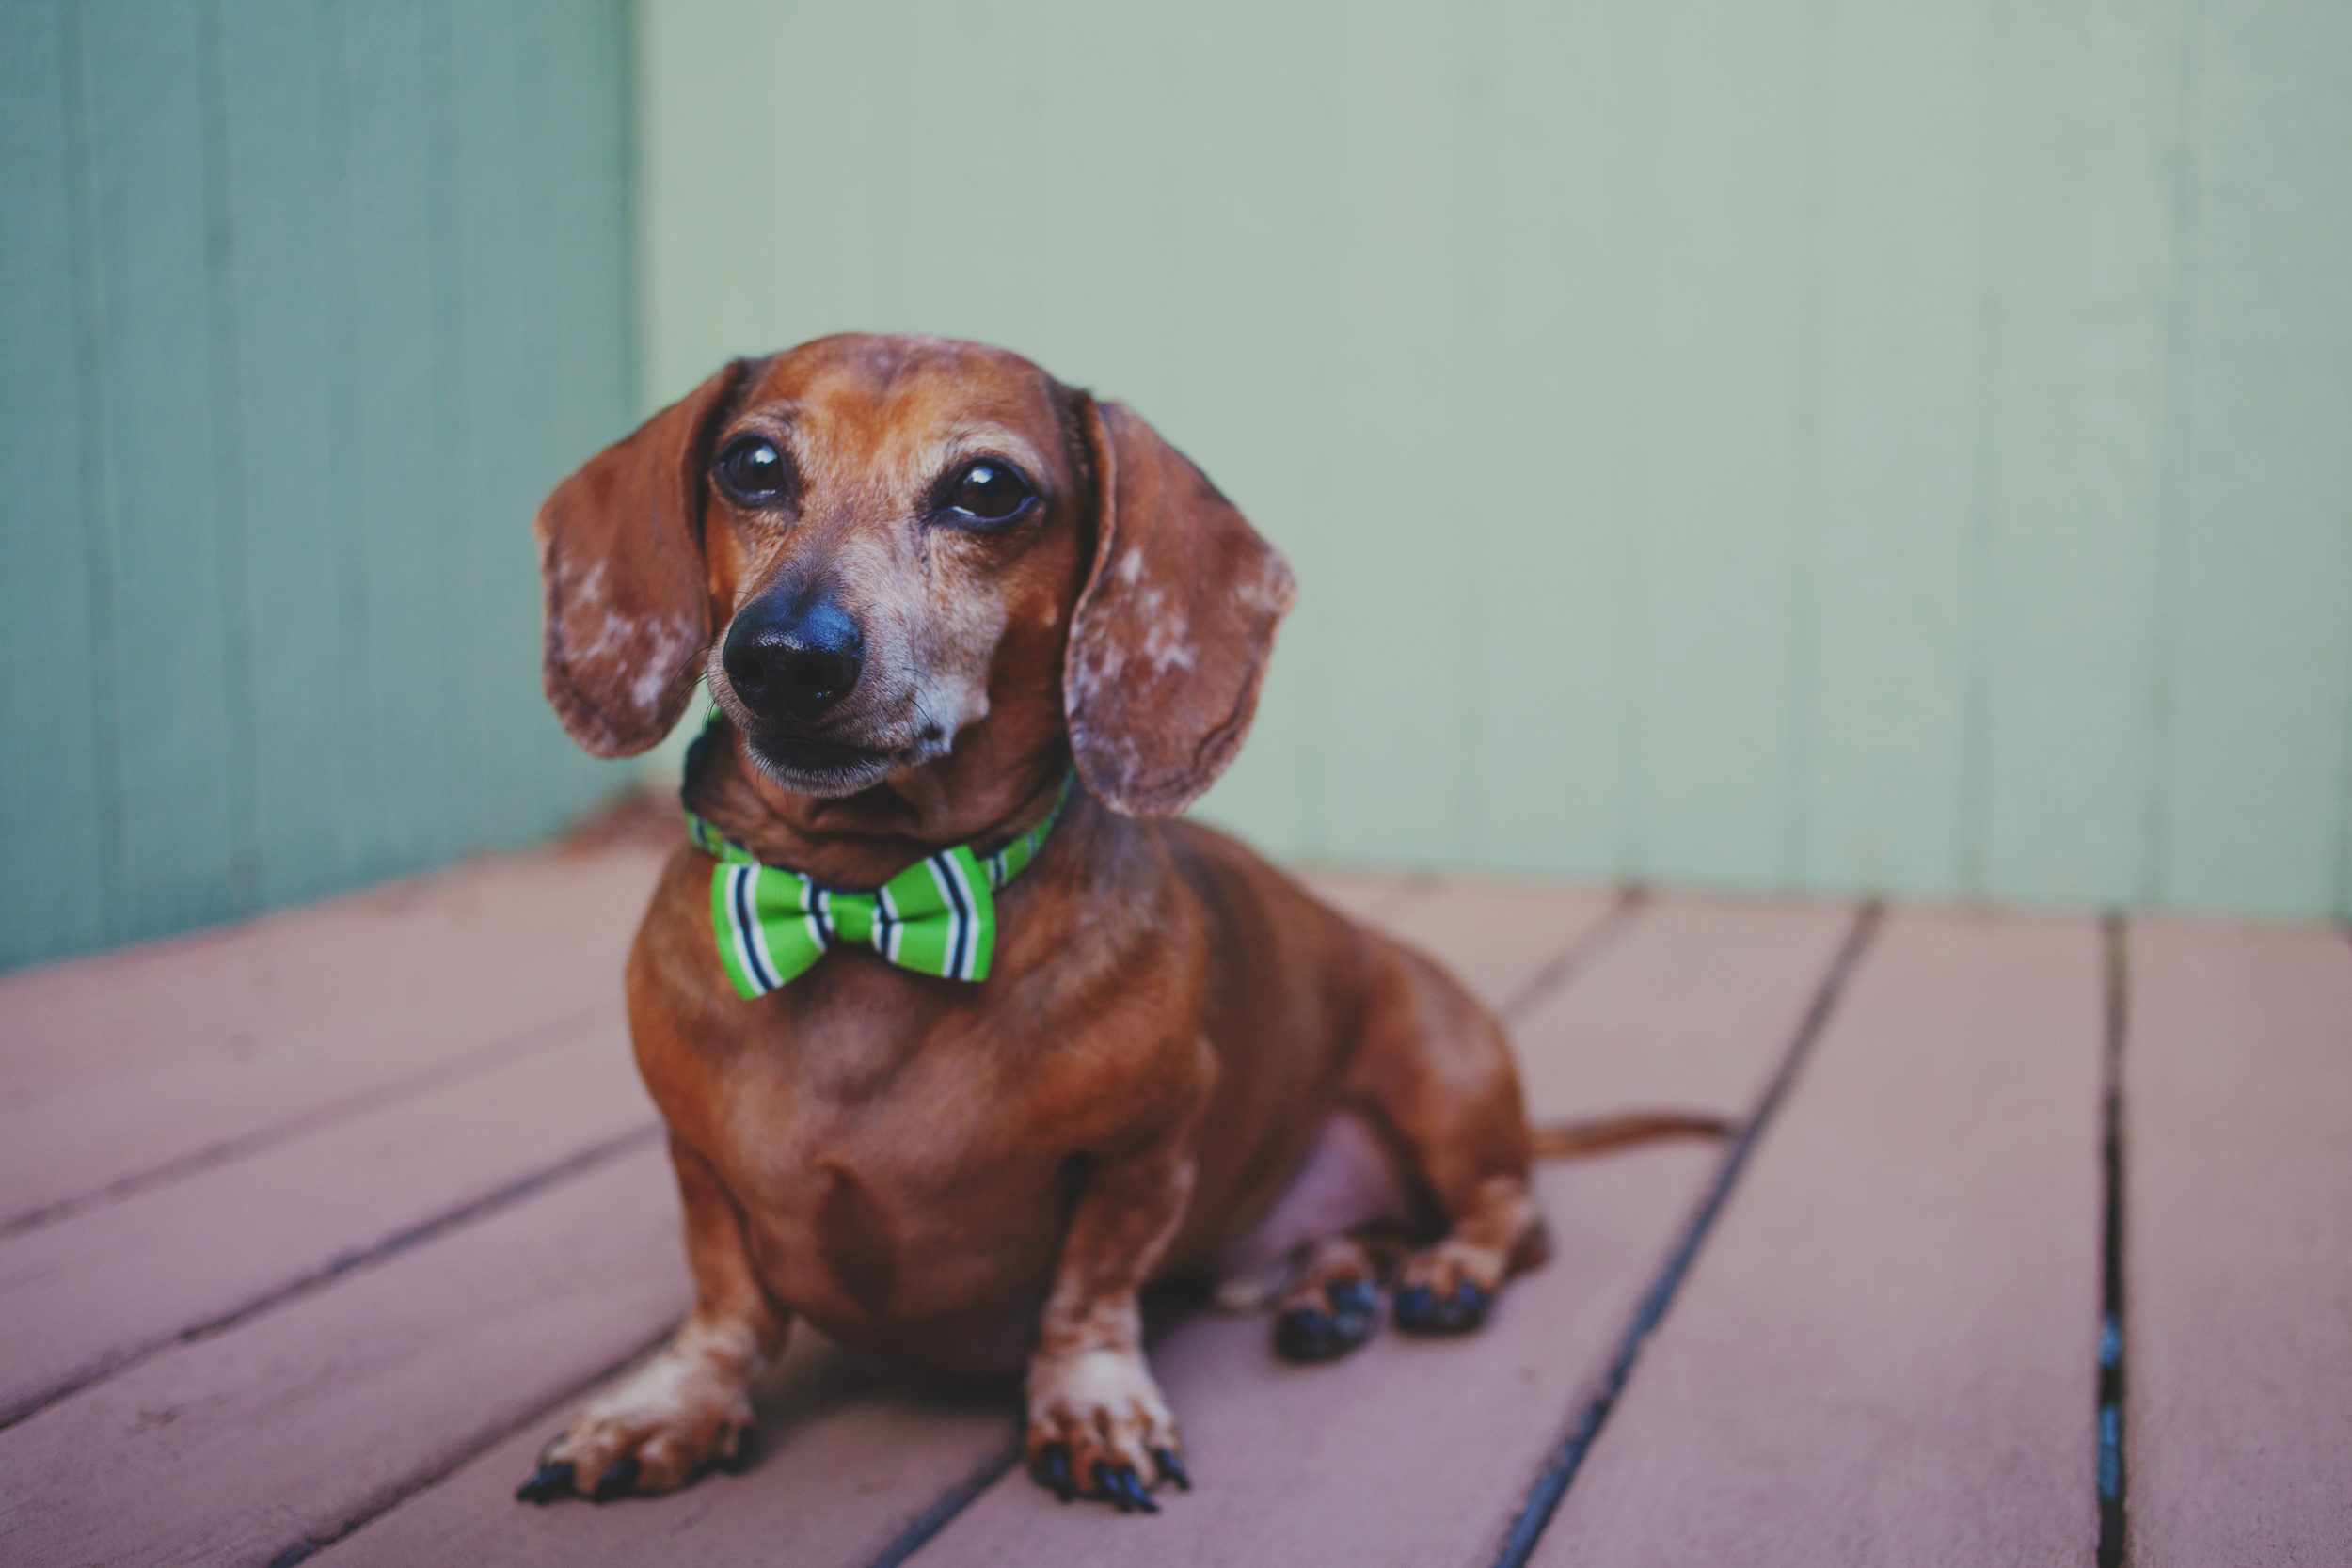 Dapper dachshund in bowtie, photographed by Bend, OR lifestyle photographer The Suitcasee Studio